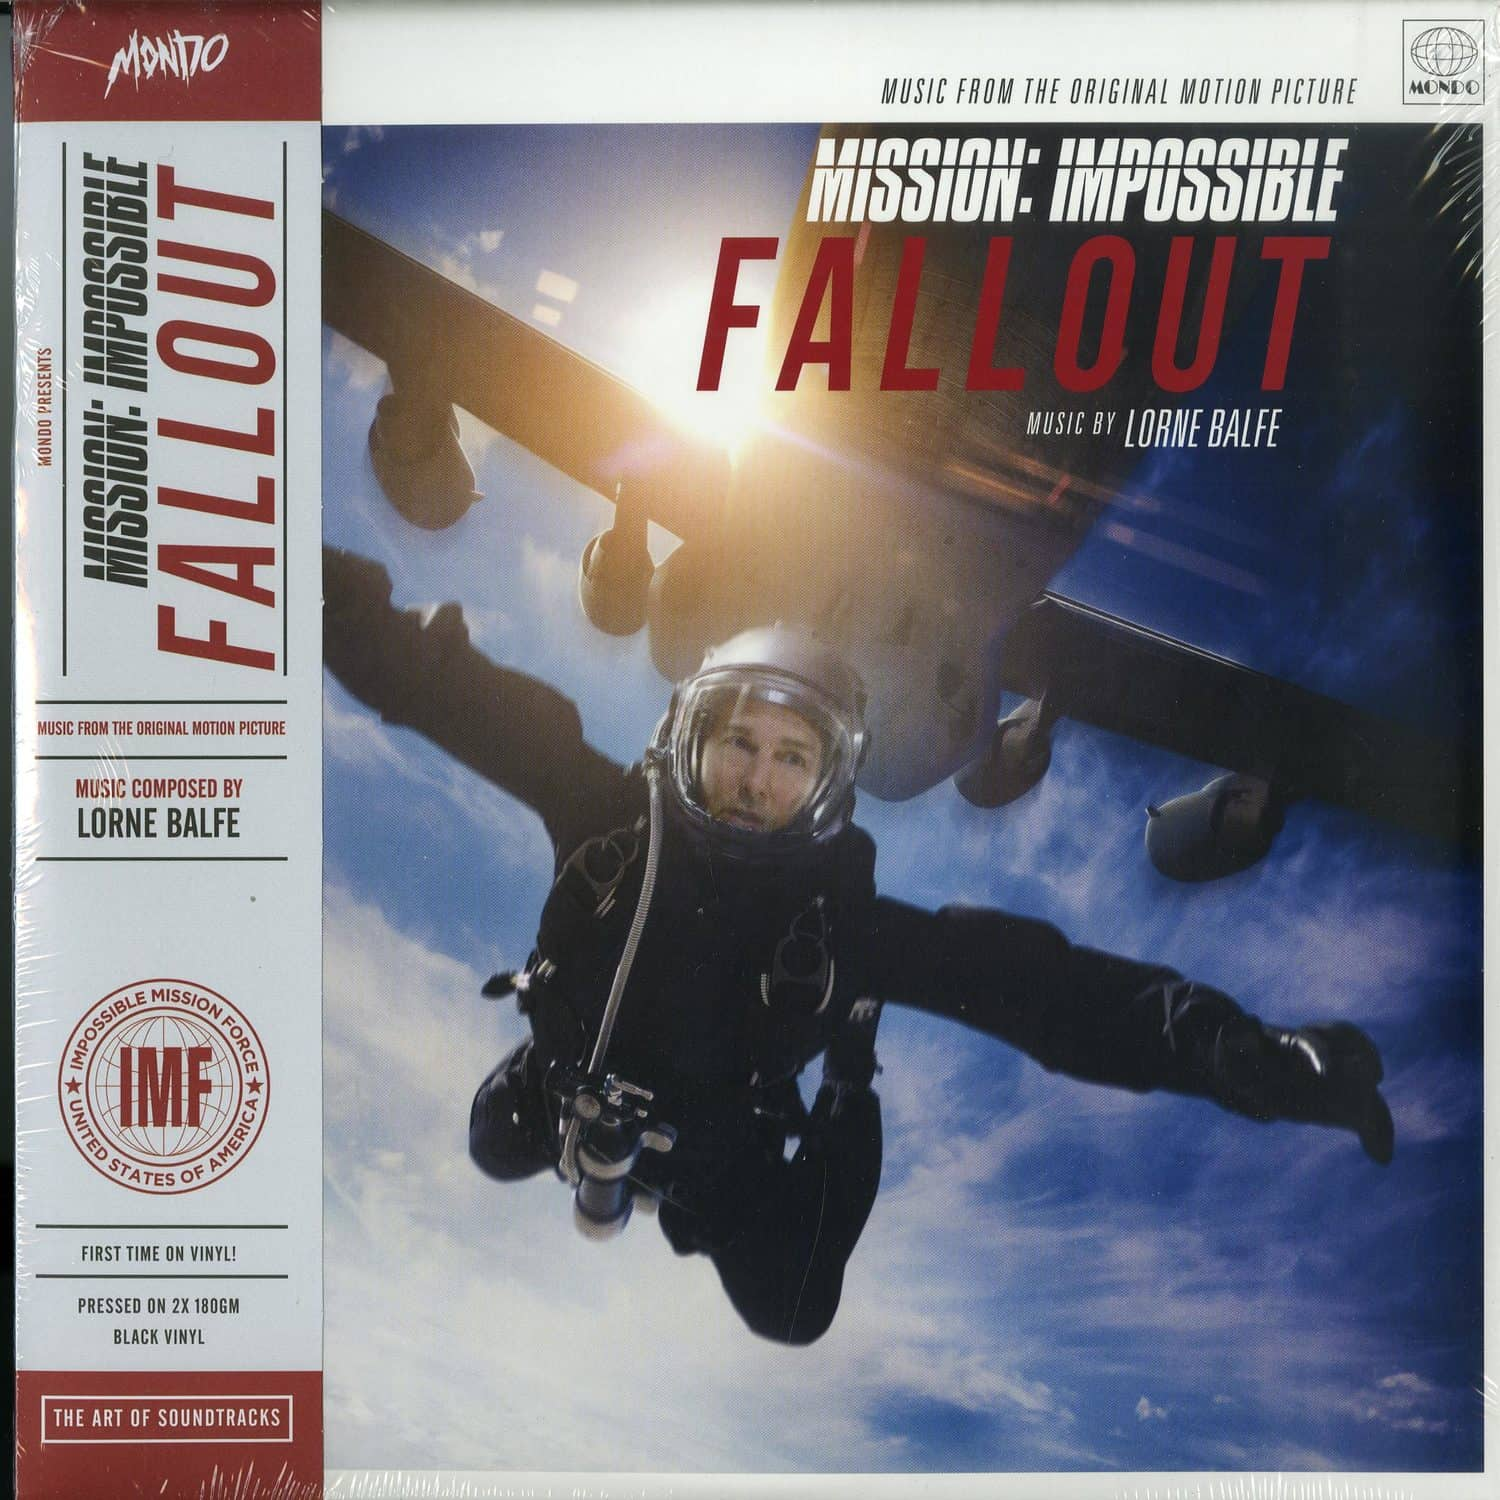 Lorne Balfe - MISSION: IMPOSSIBLE - FALLOUT - O.S.T.